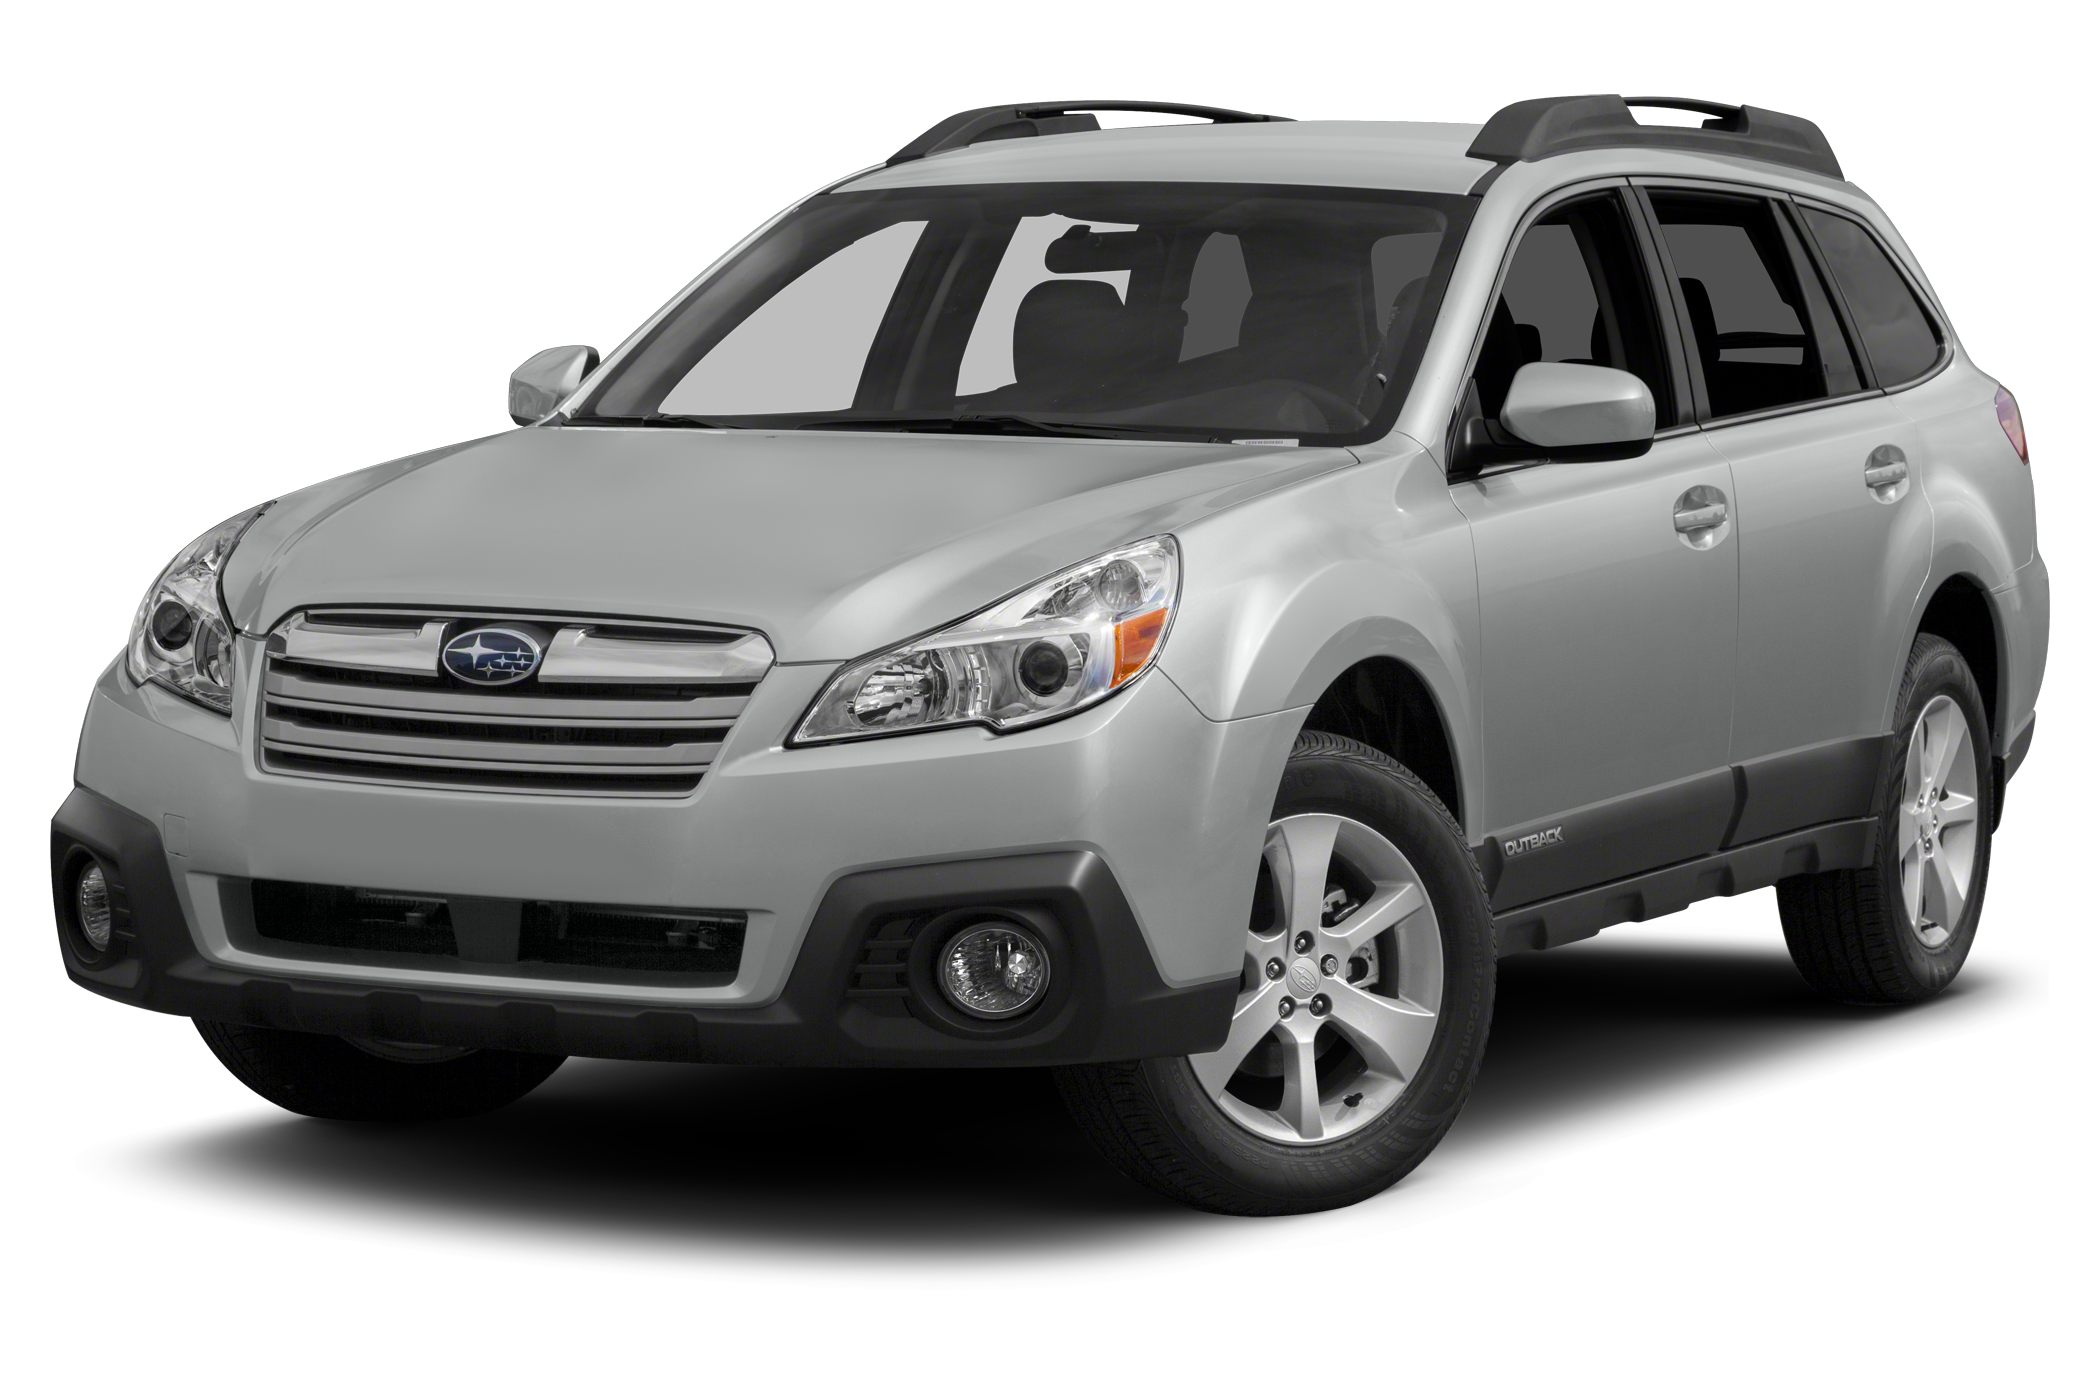 2014 Subaru Outback 36R Limited Awards  2014 KBBcom 10 Best All-Wheel-Drive Cars  SUVs Under